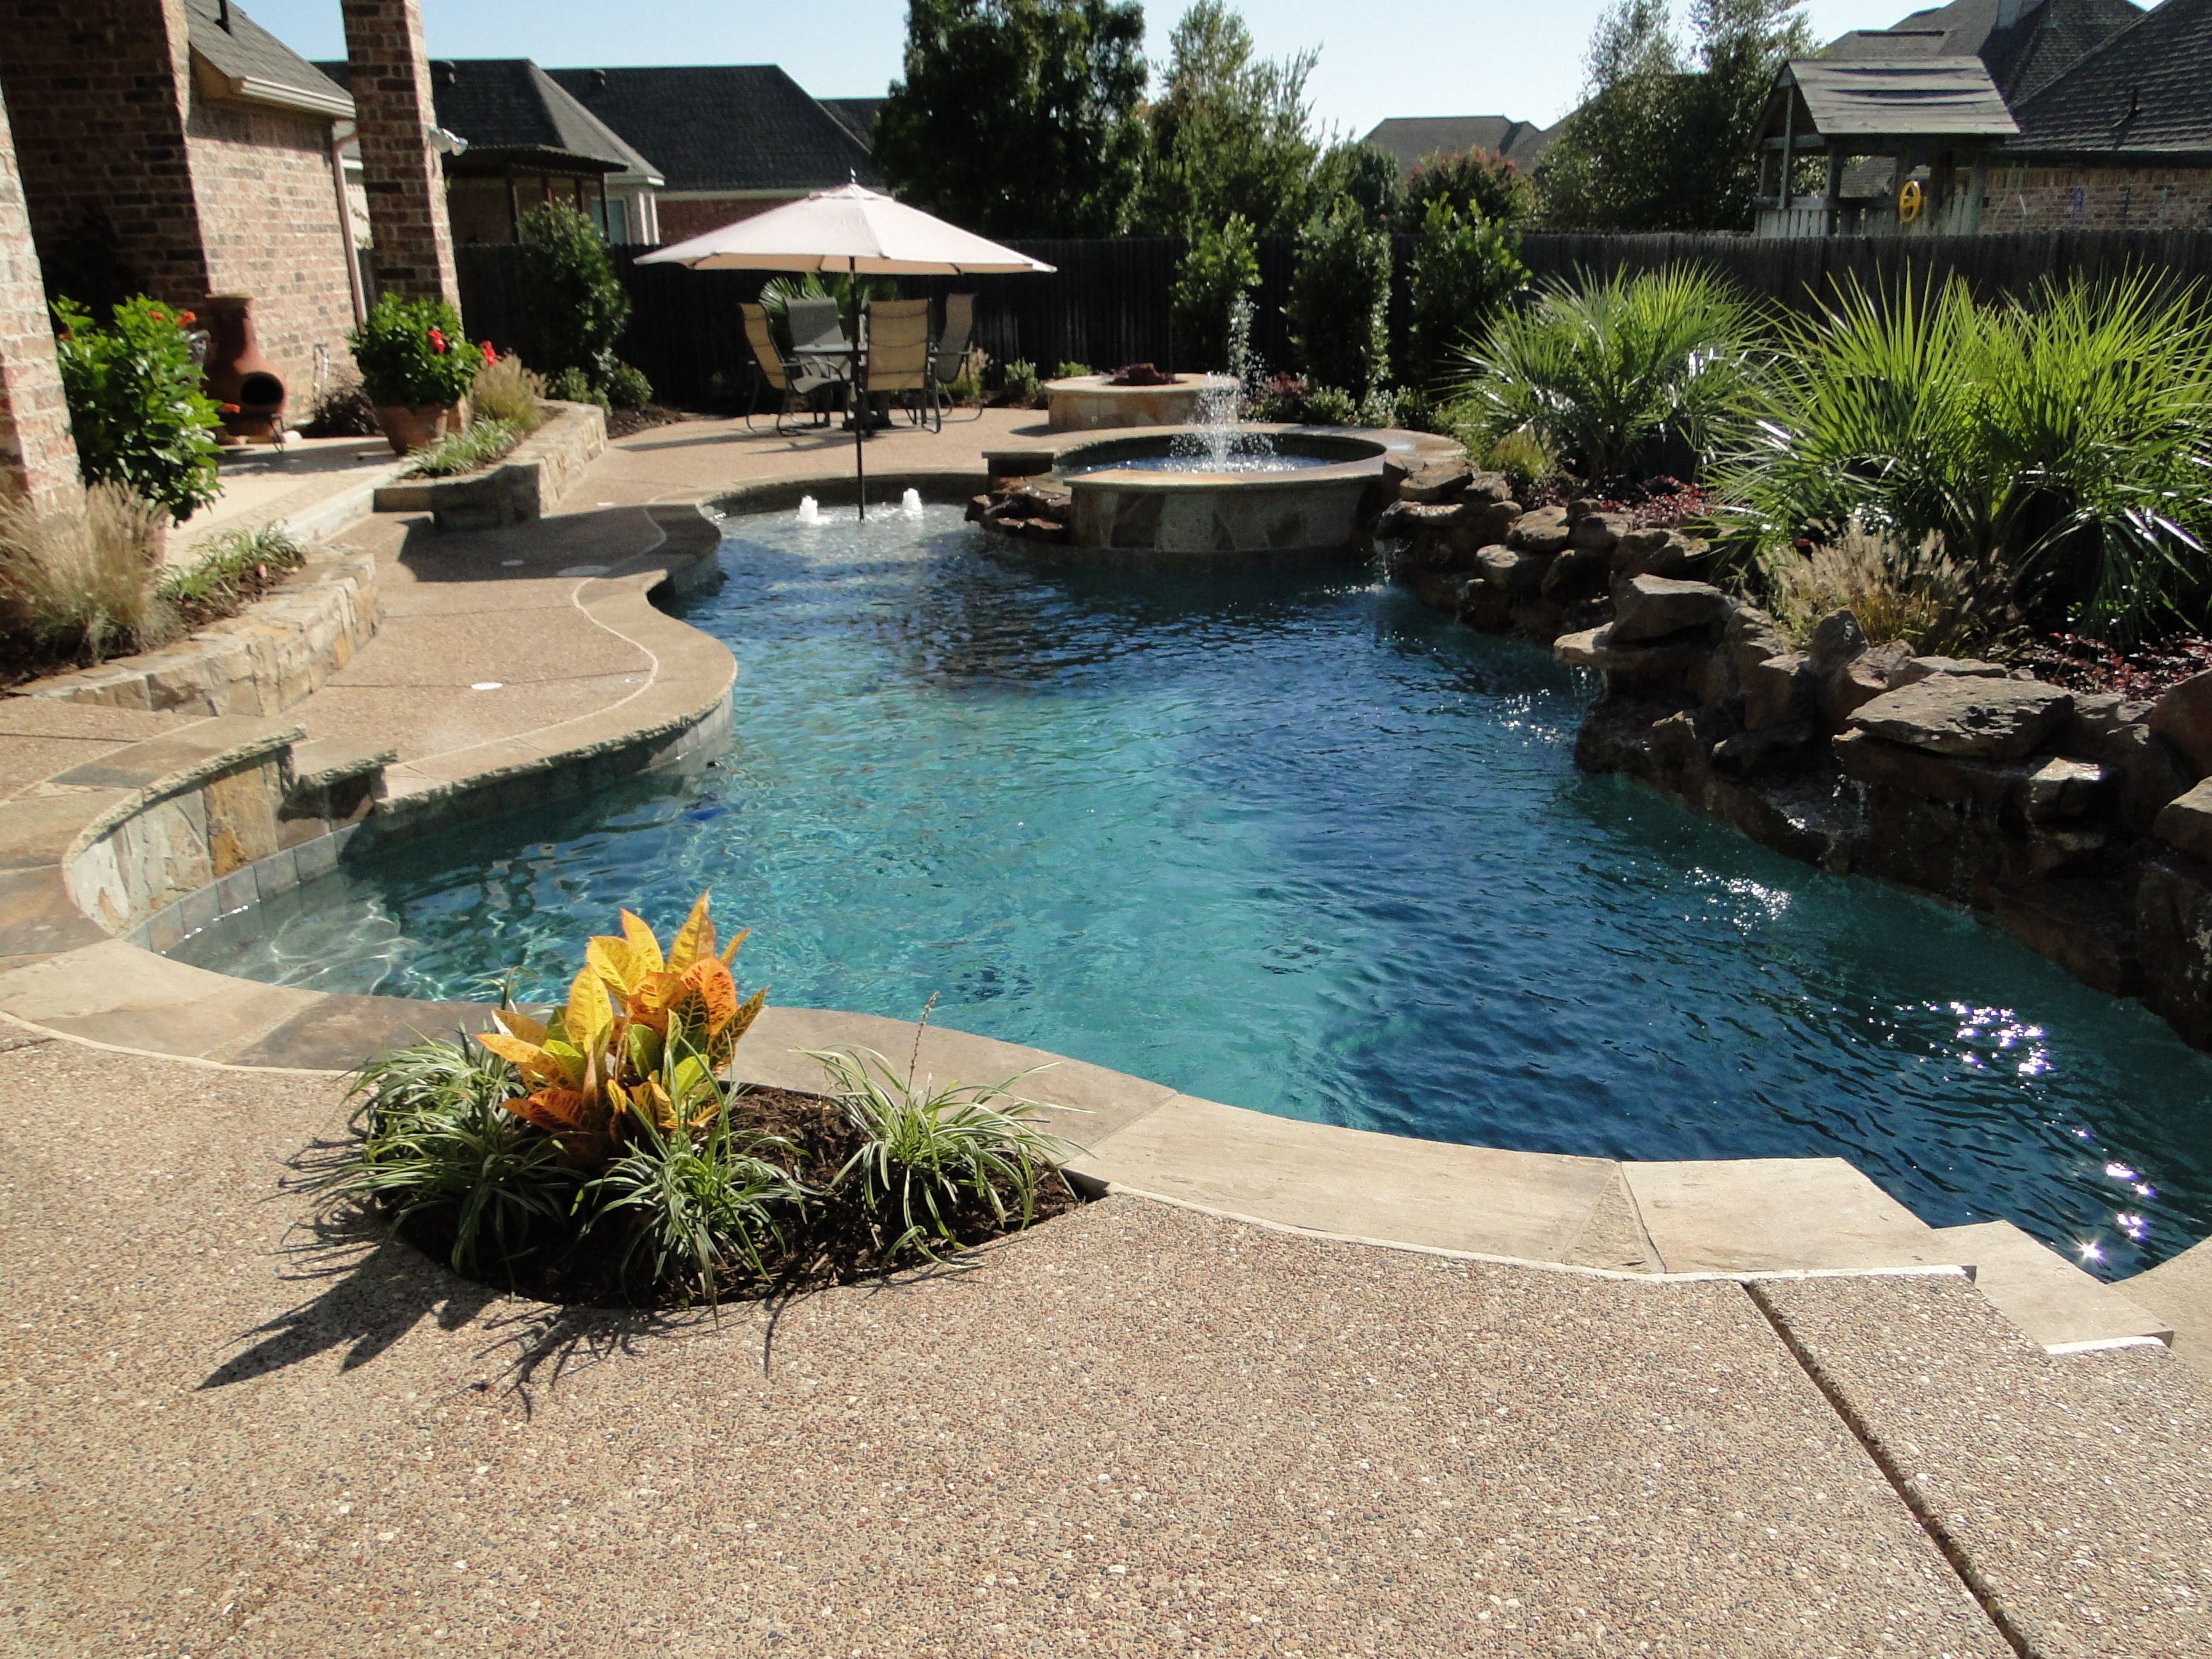 natural freefrom pool north richland hills texas boulder backyard landscaping ideas swimming pool design - Pool Designs For Small Backyards